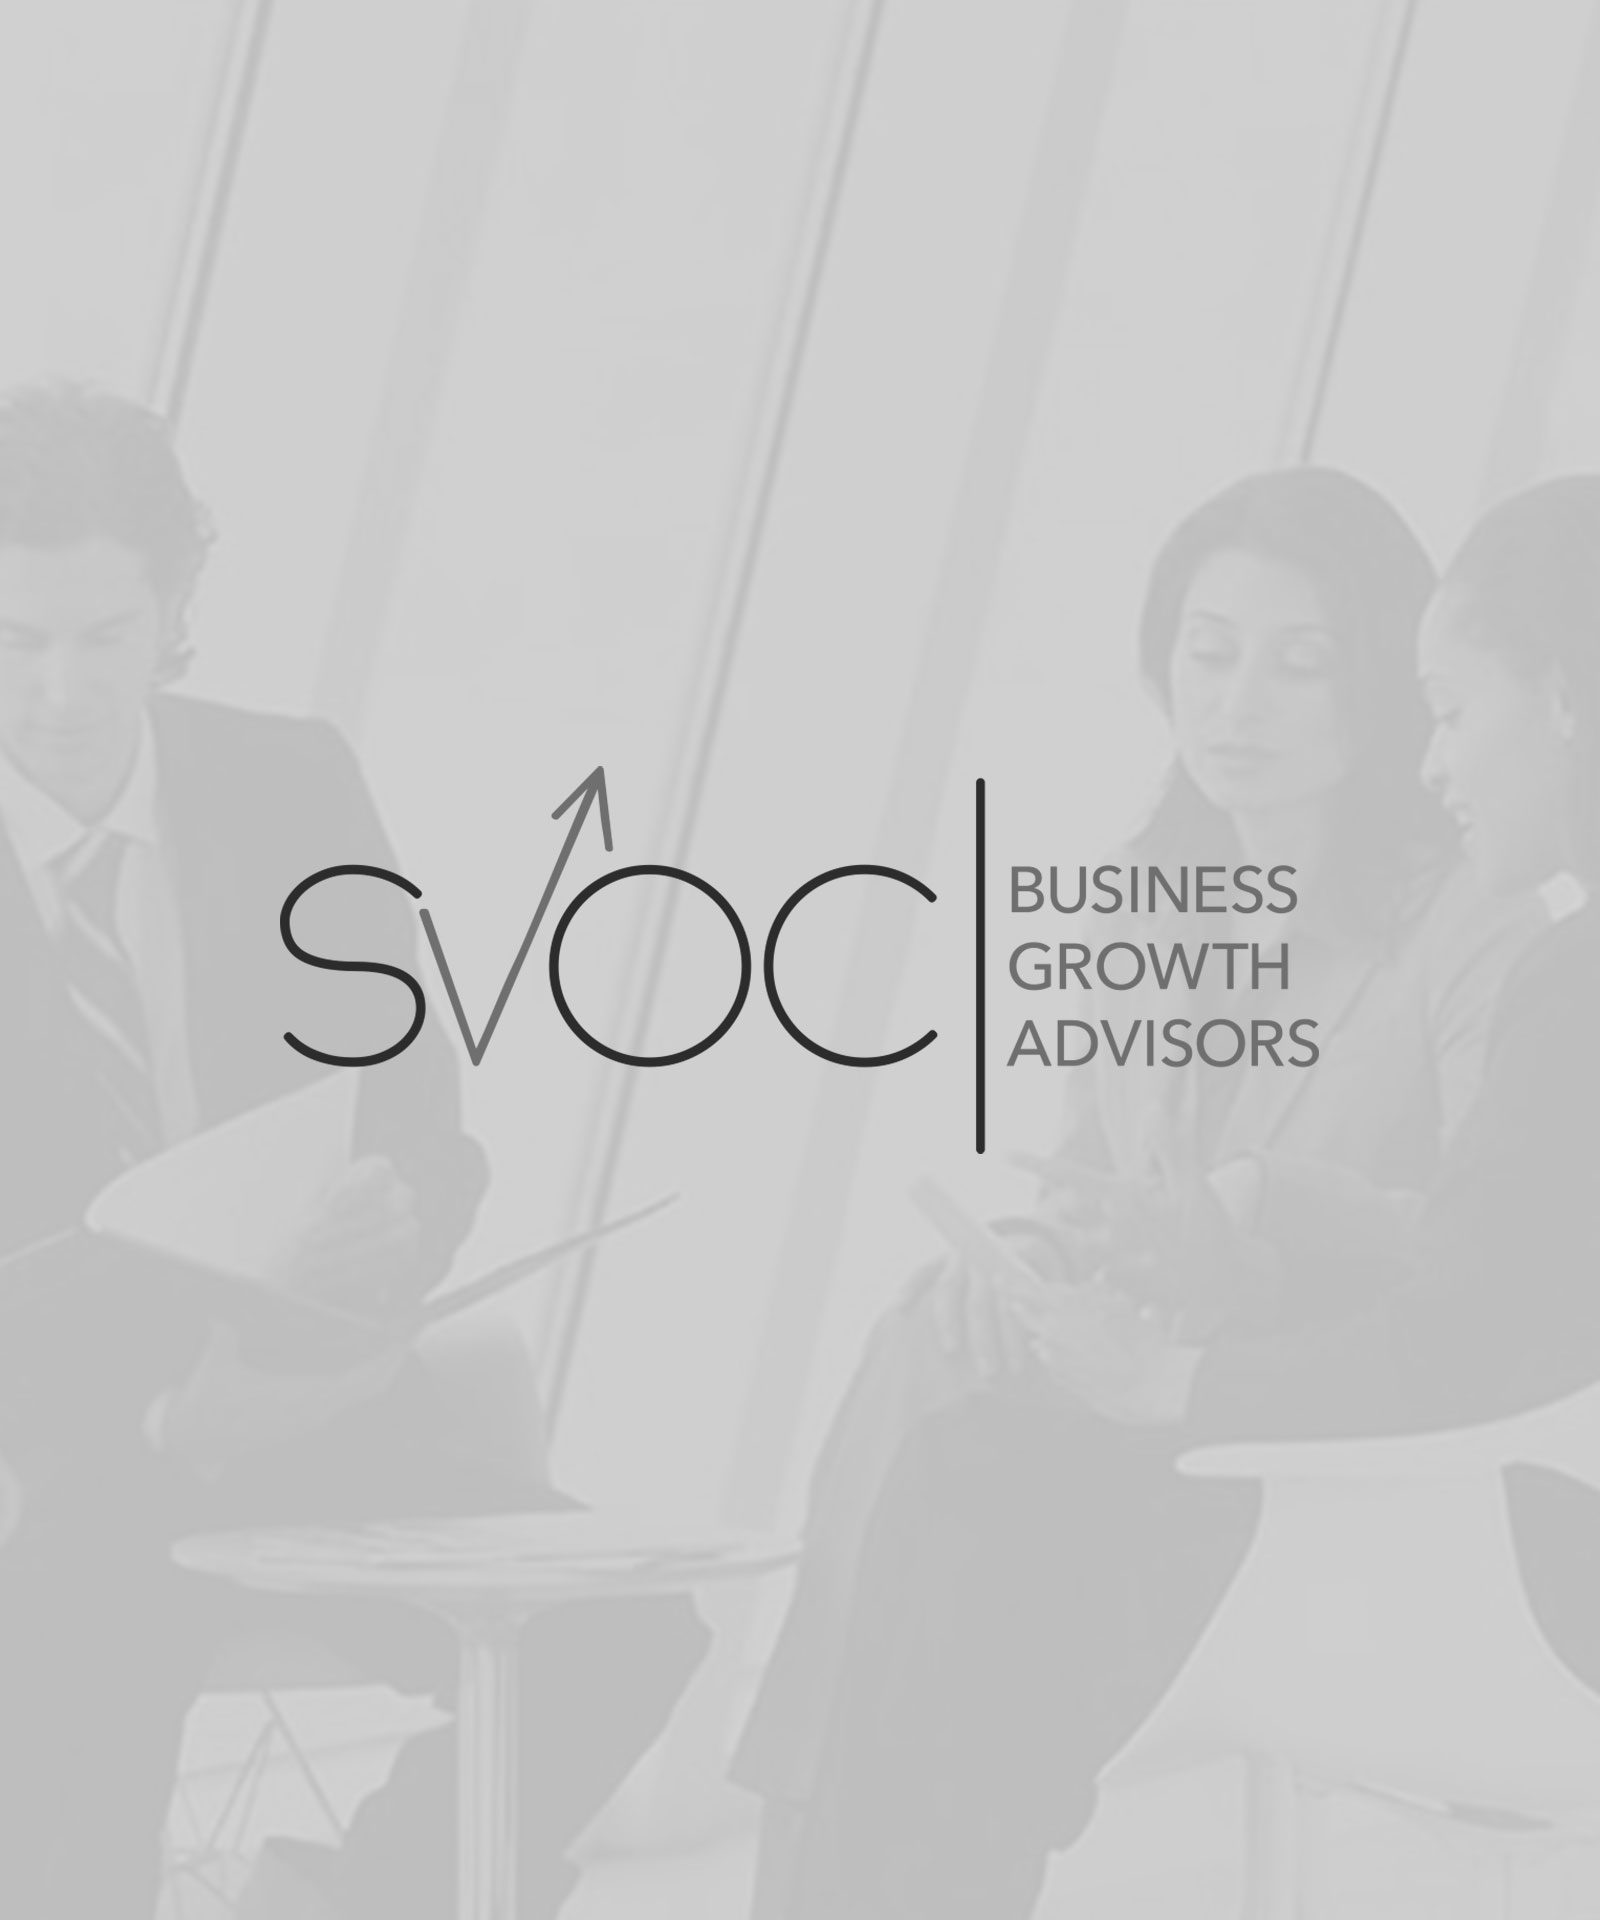 Our Work - SVOC Business Growth Advisors